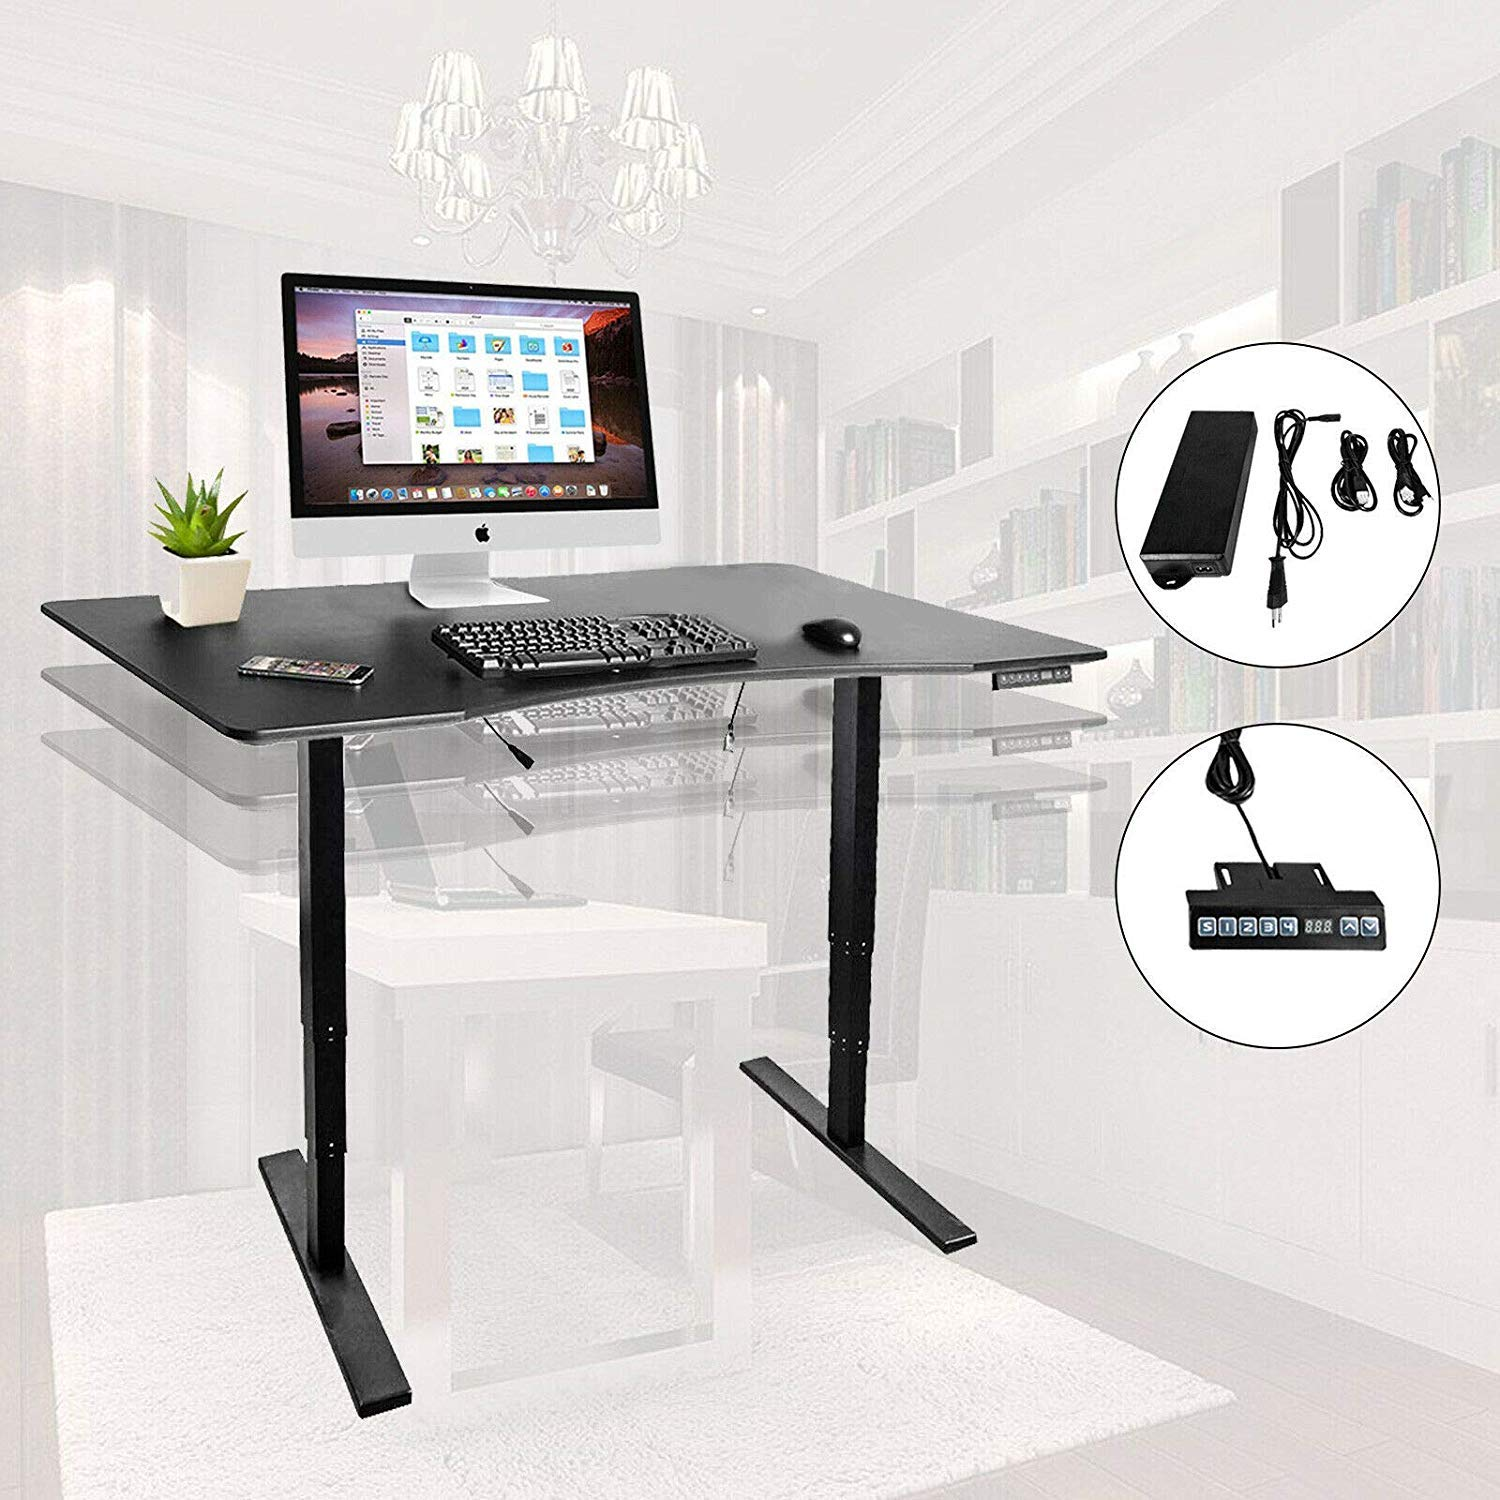 Standing Up Desk 3-Stage Electric Stand Up Desk Frame/Dual Synchronous Motor Ergonomic With Memory Control